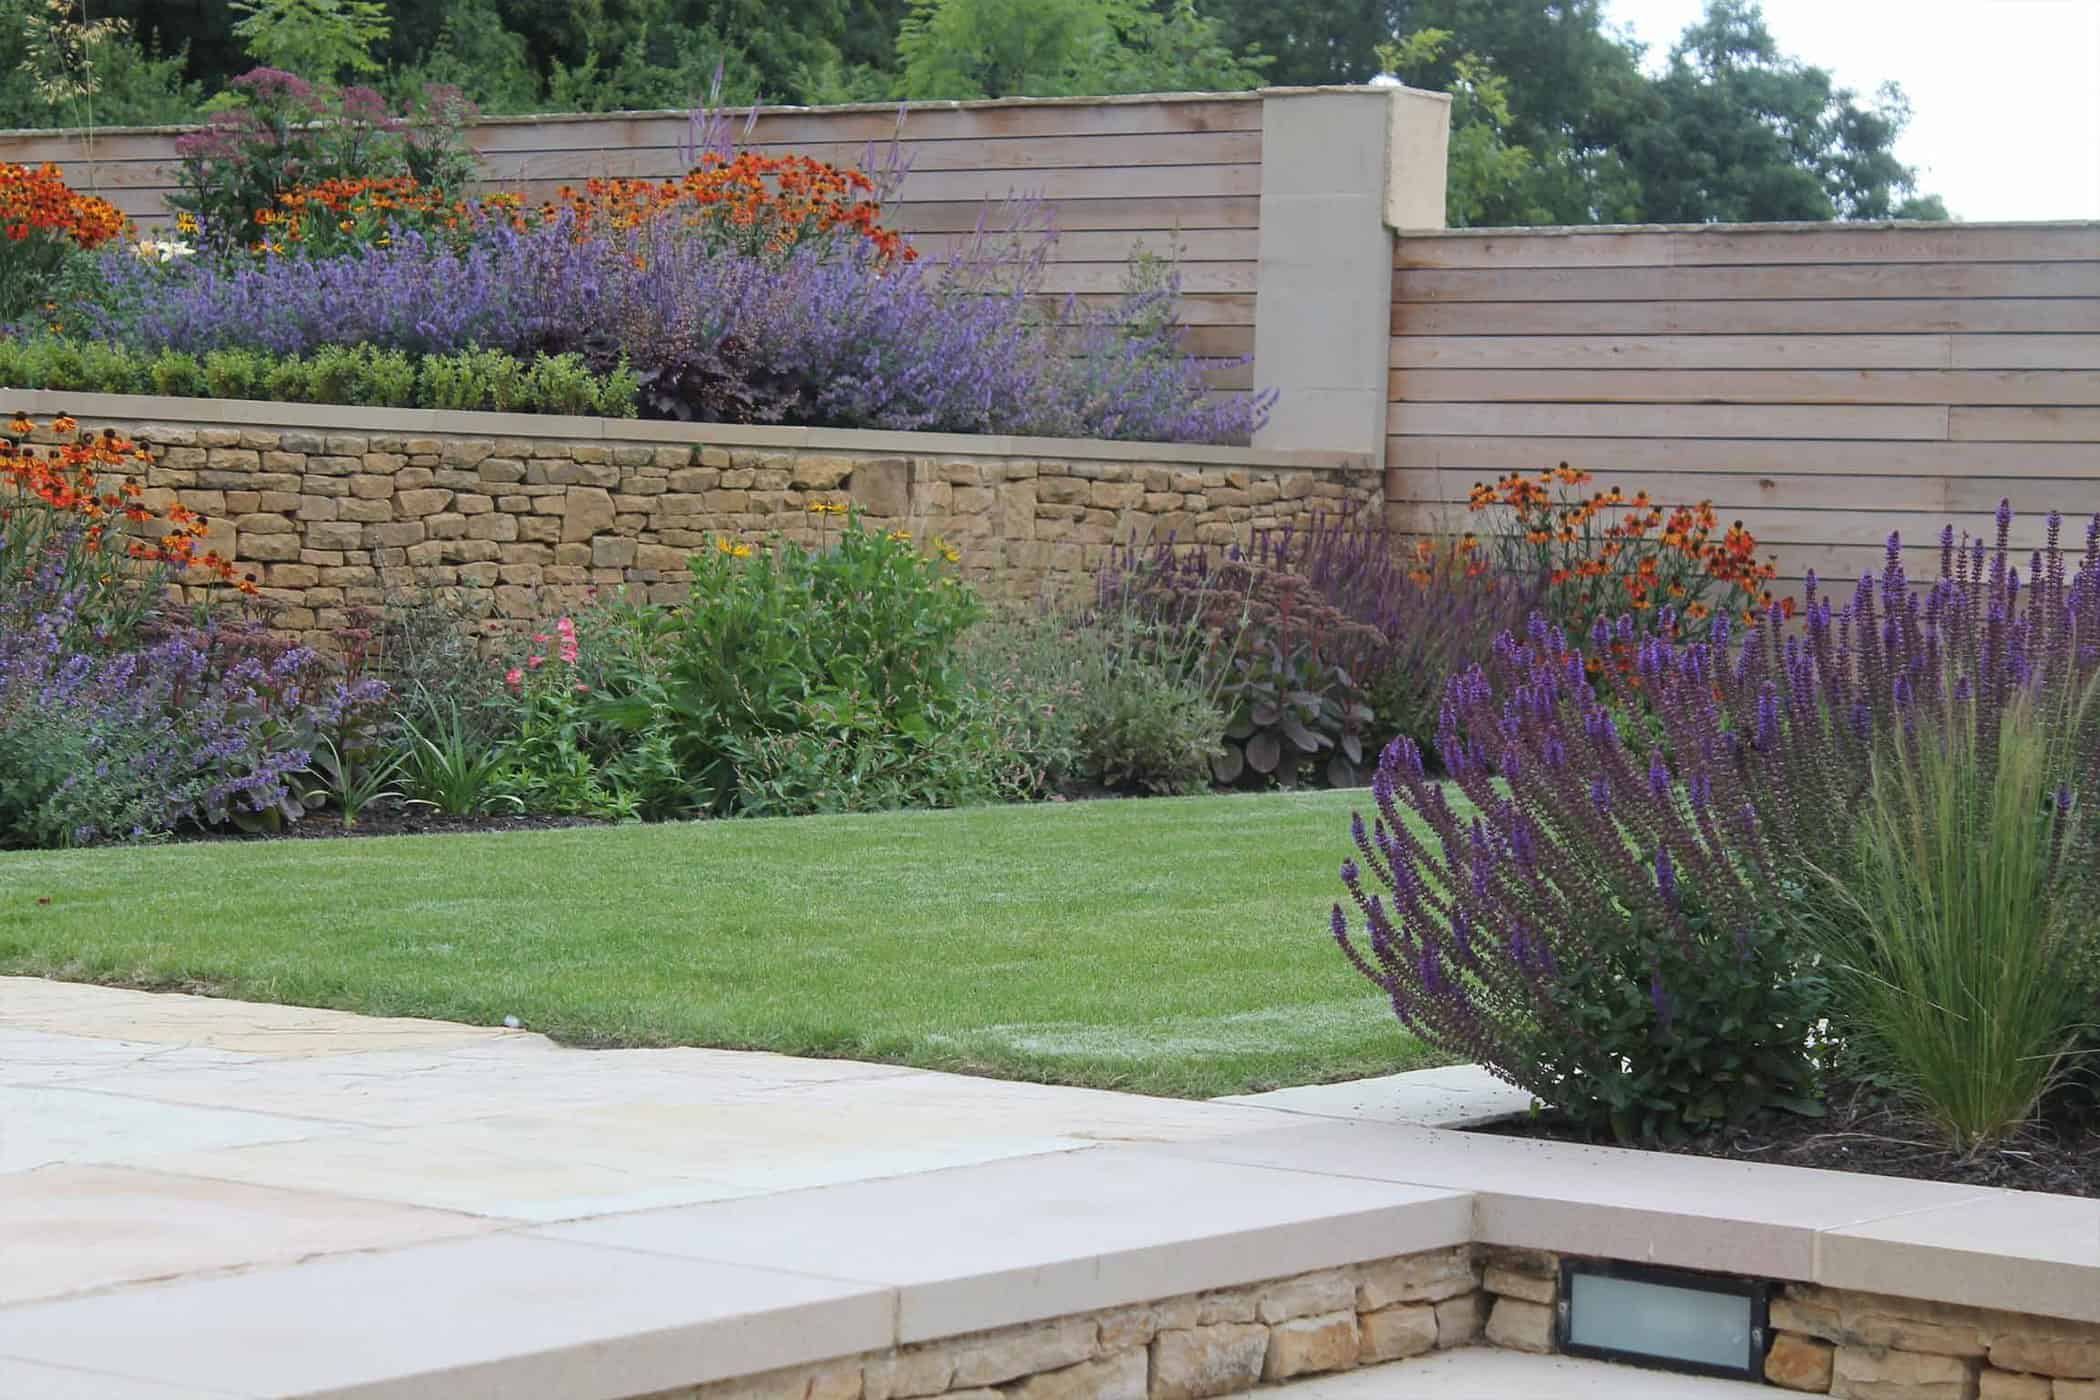 Modern Terraced Garden With Level Lawns And Colourful Planting